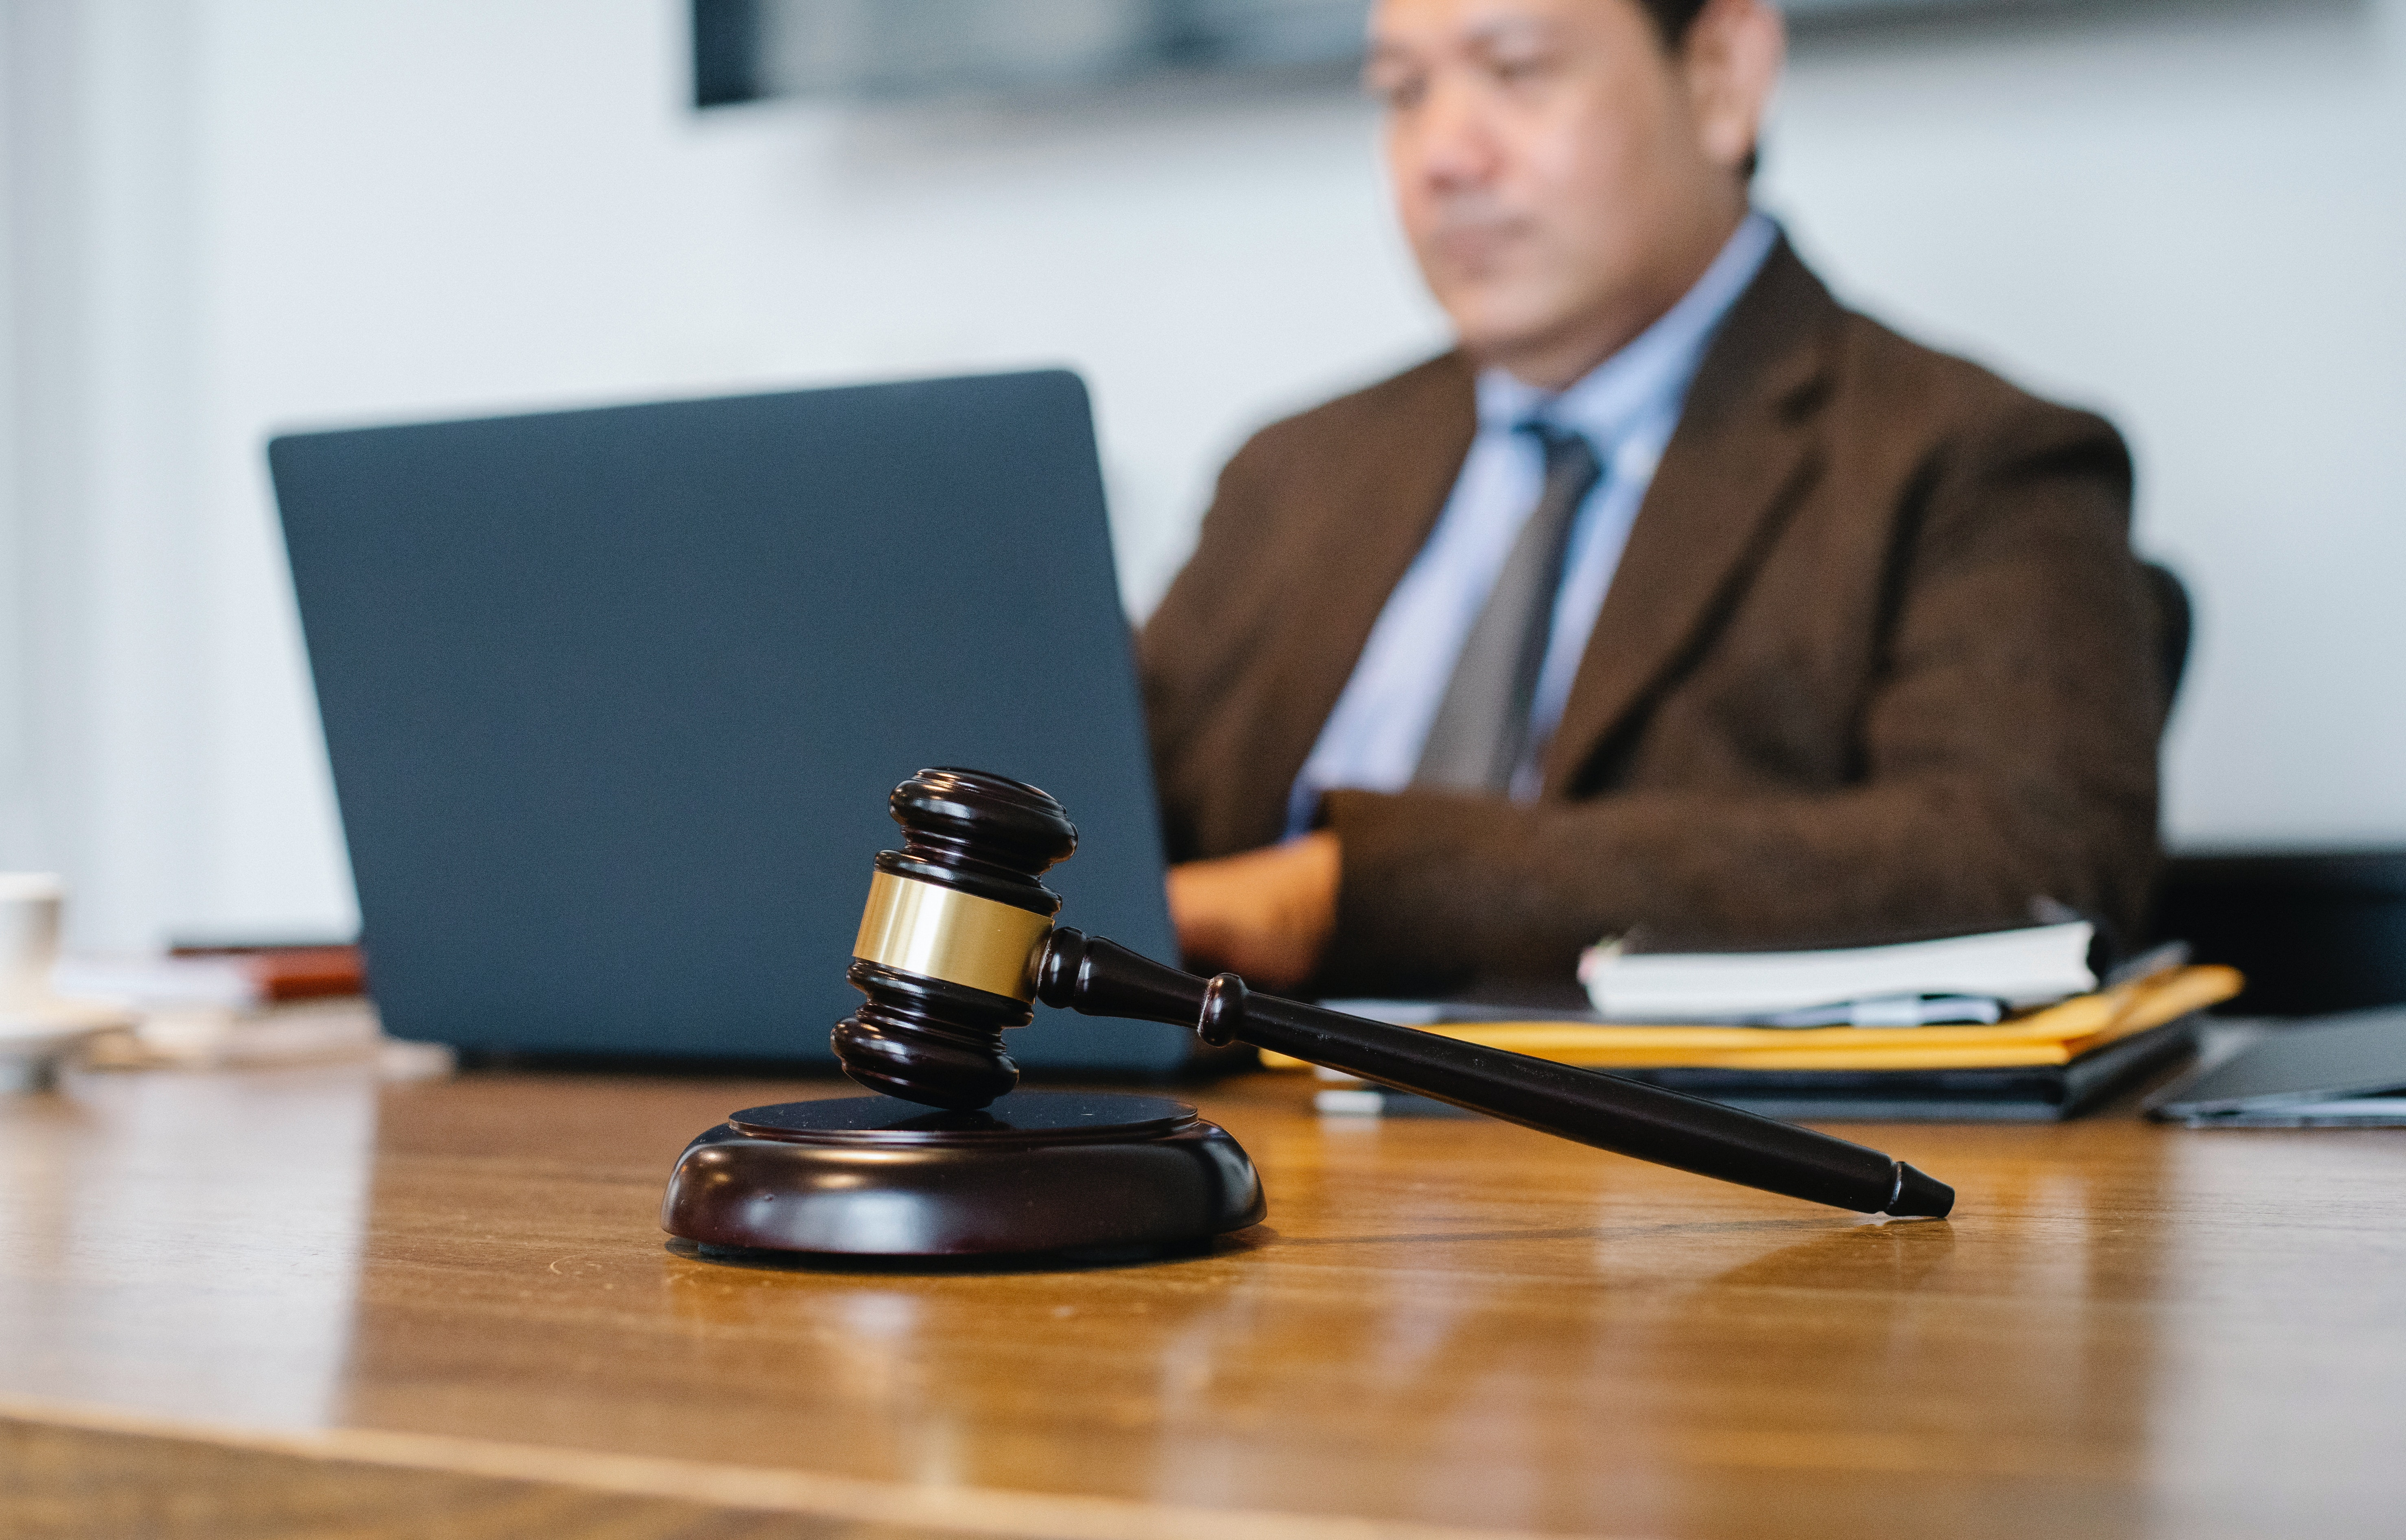 Lawyer Using A Computer